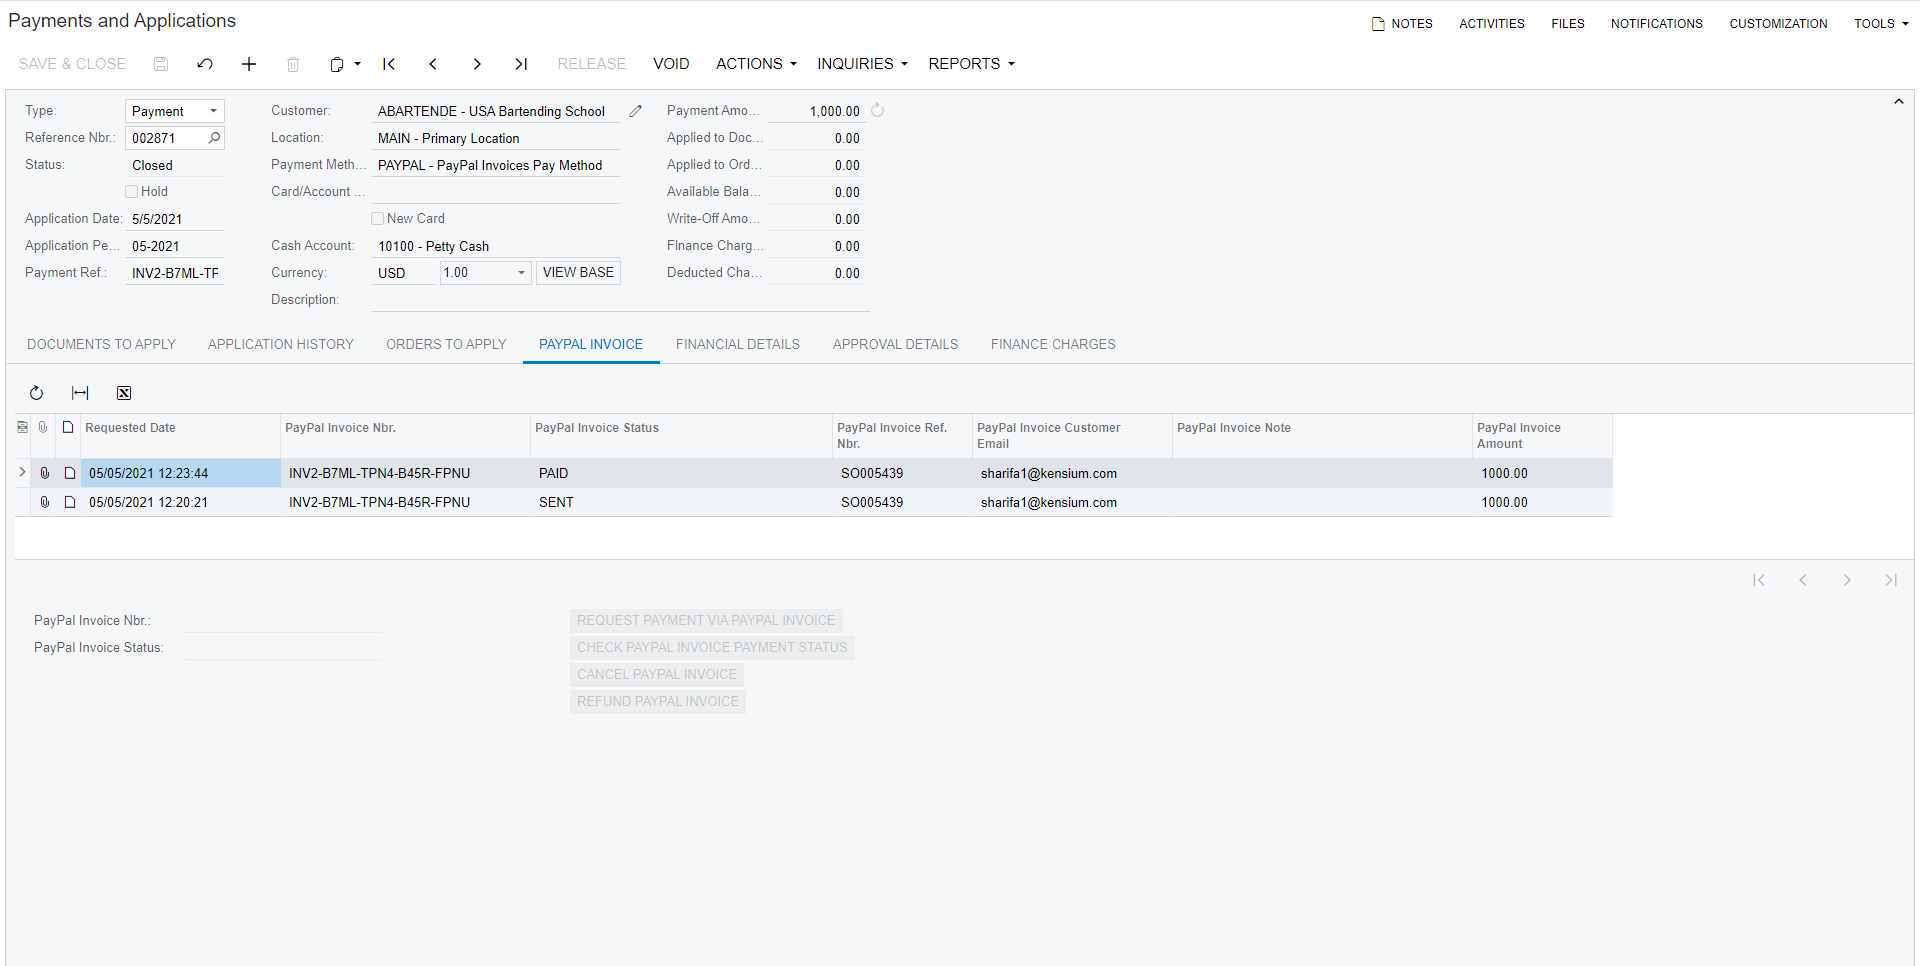 PayPal Invoicing on the Payments & Applications Screen